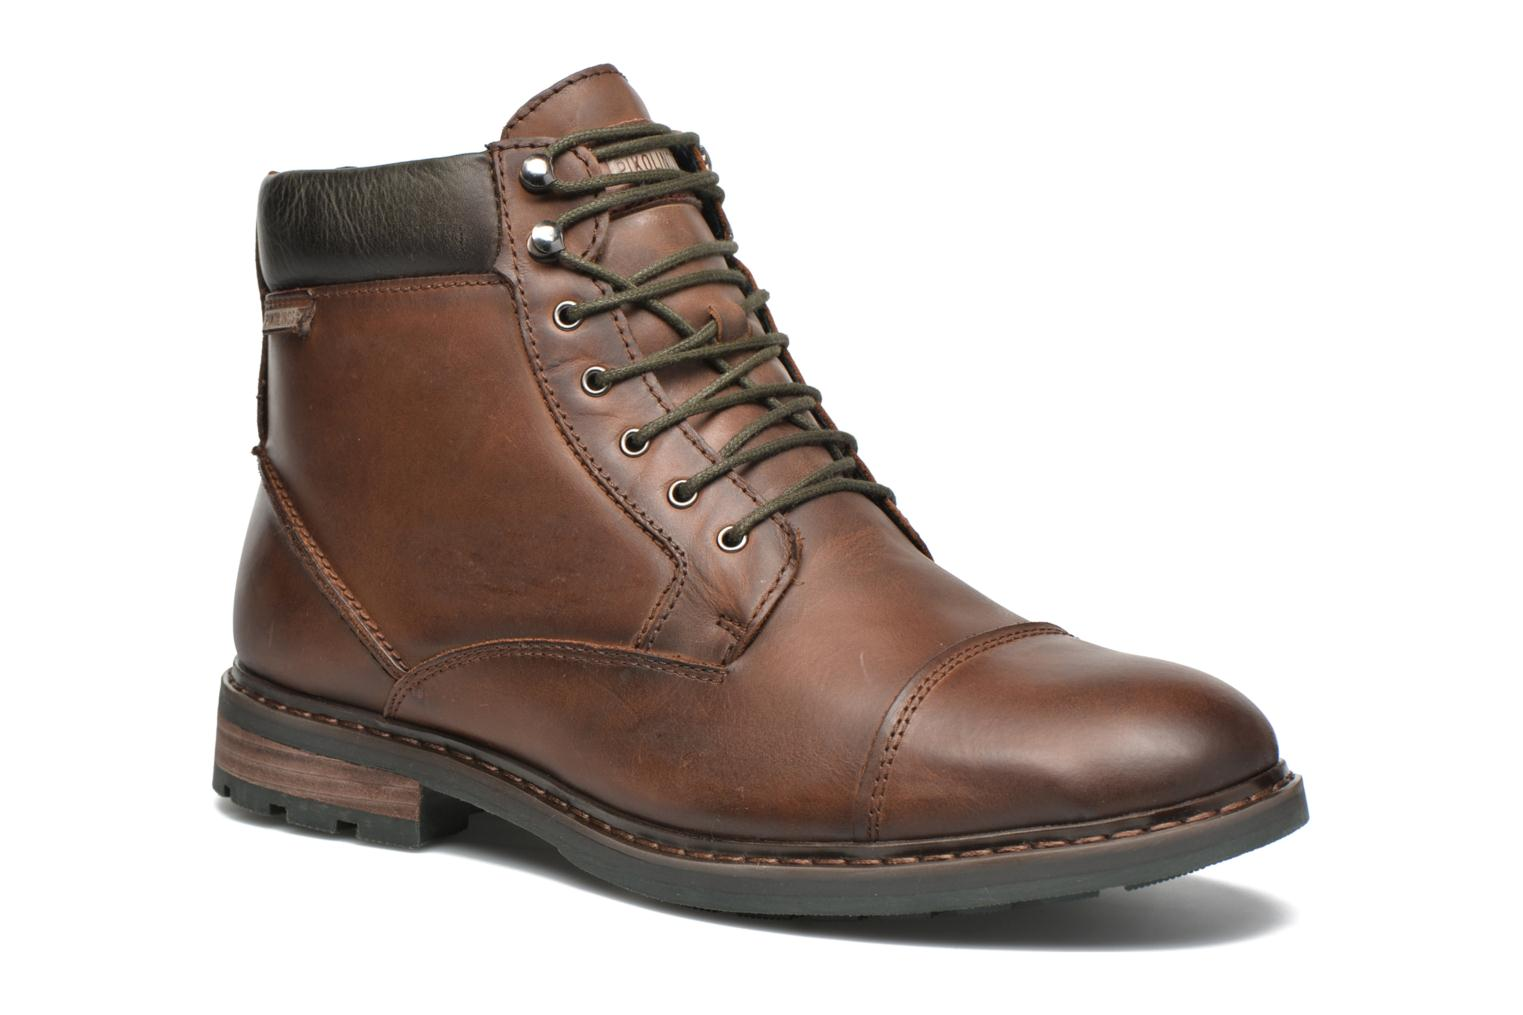 Marques Chaussure homme Pikolinos homme CACERES M9E-8104SP Cuero